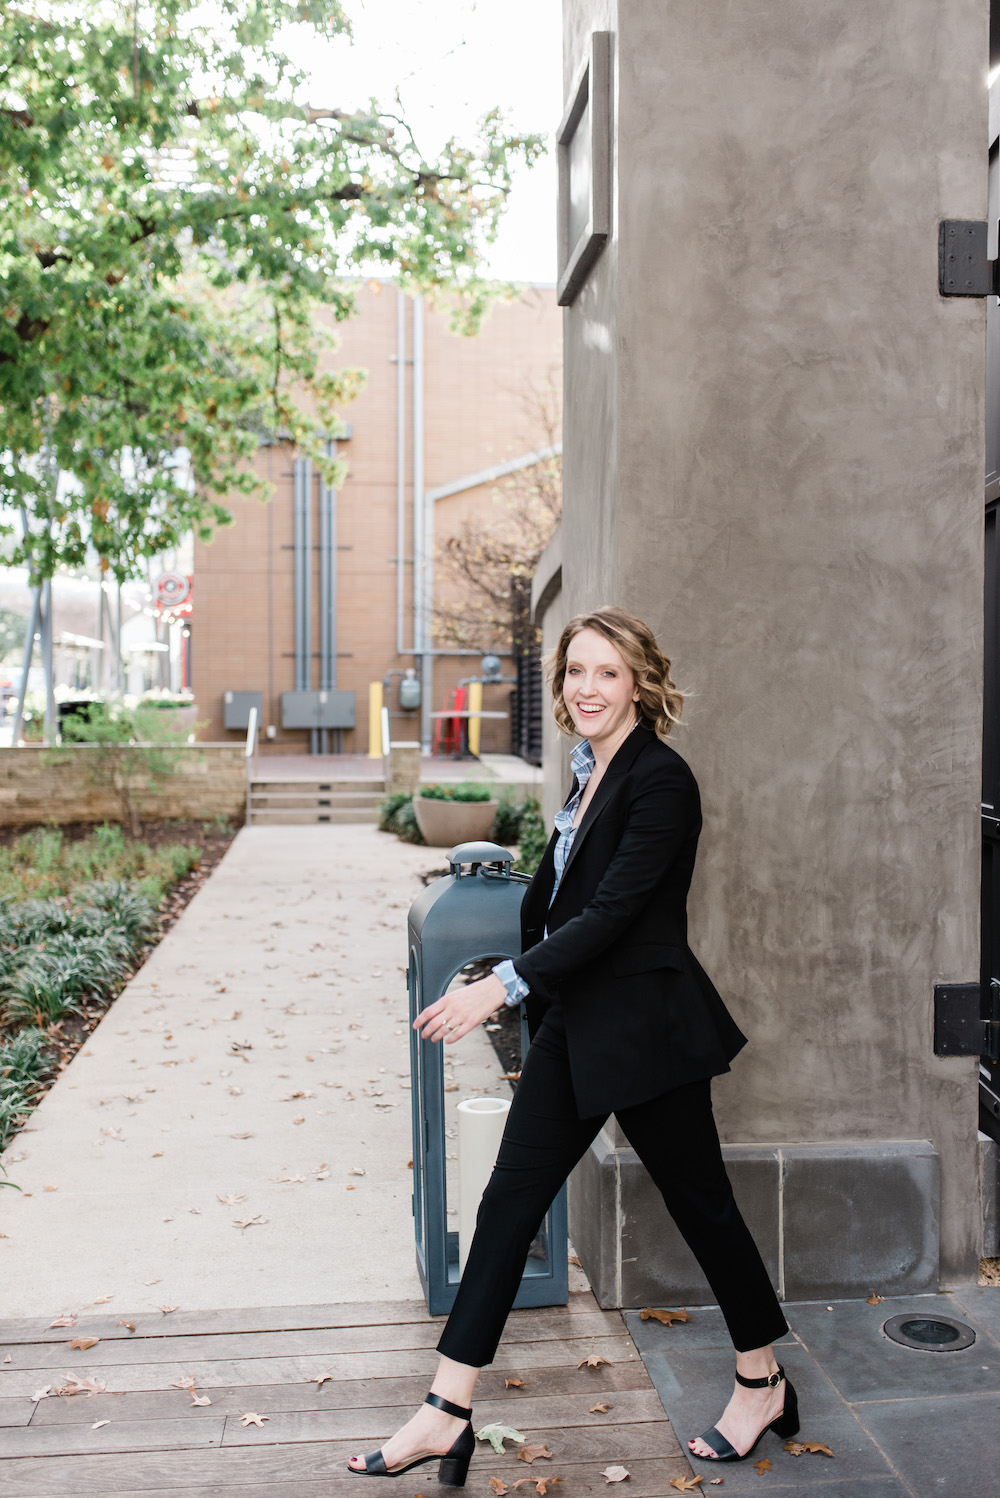 Day in the Life: Working Mom of 3, theory suit, domain Northside, women's workwear, women's suit, women's work style, Austin fashion blogger, working mom blog, working mom blogger, Austin blogger, Austin mom blog, Austin mom blogger, Texas blogger, Austin marketer, women in business, maintaining balance as a working mom, how to be a working mom and raise kids, how to manage kids and work, blogging and working full time, full time working mom, Georgetown Texas, round rock blogger, Georgetown blogger, cedar park Texas, Georgetown blogger